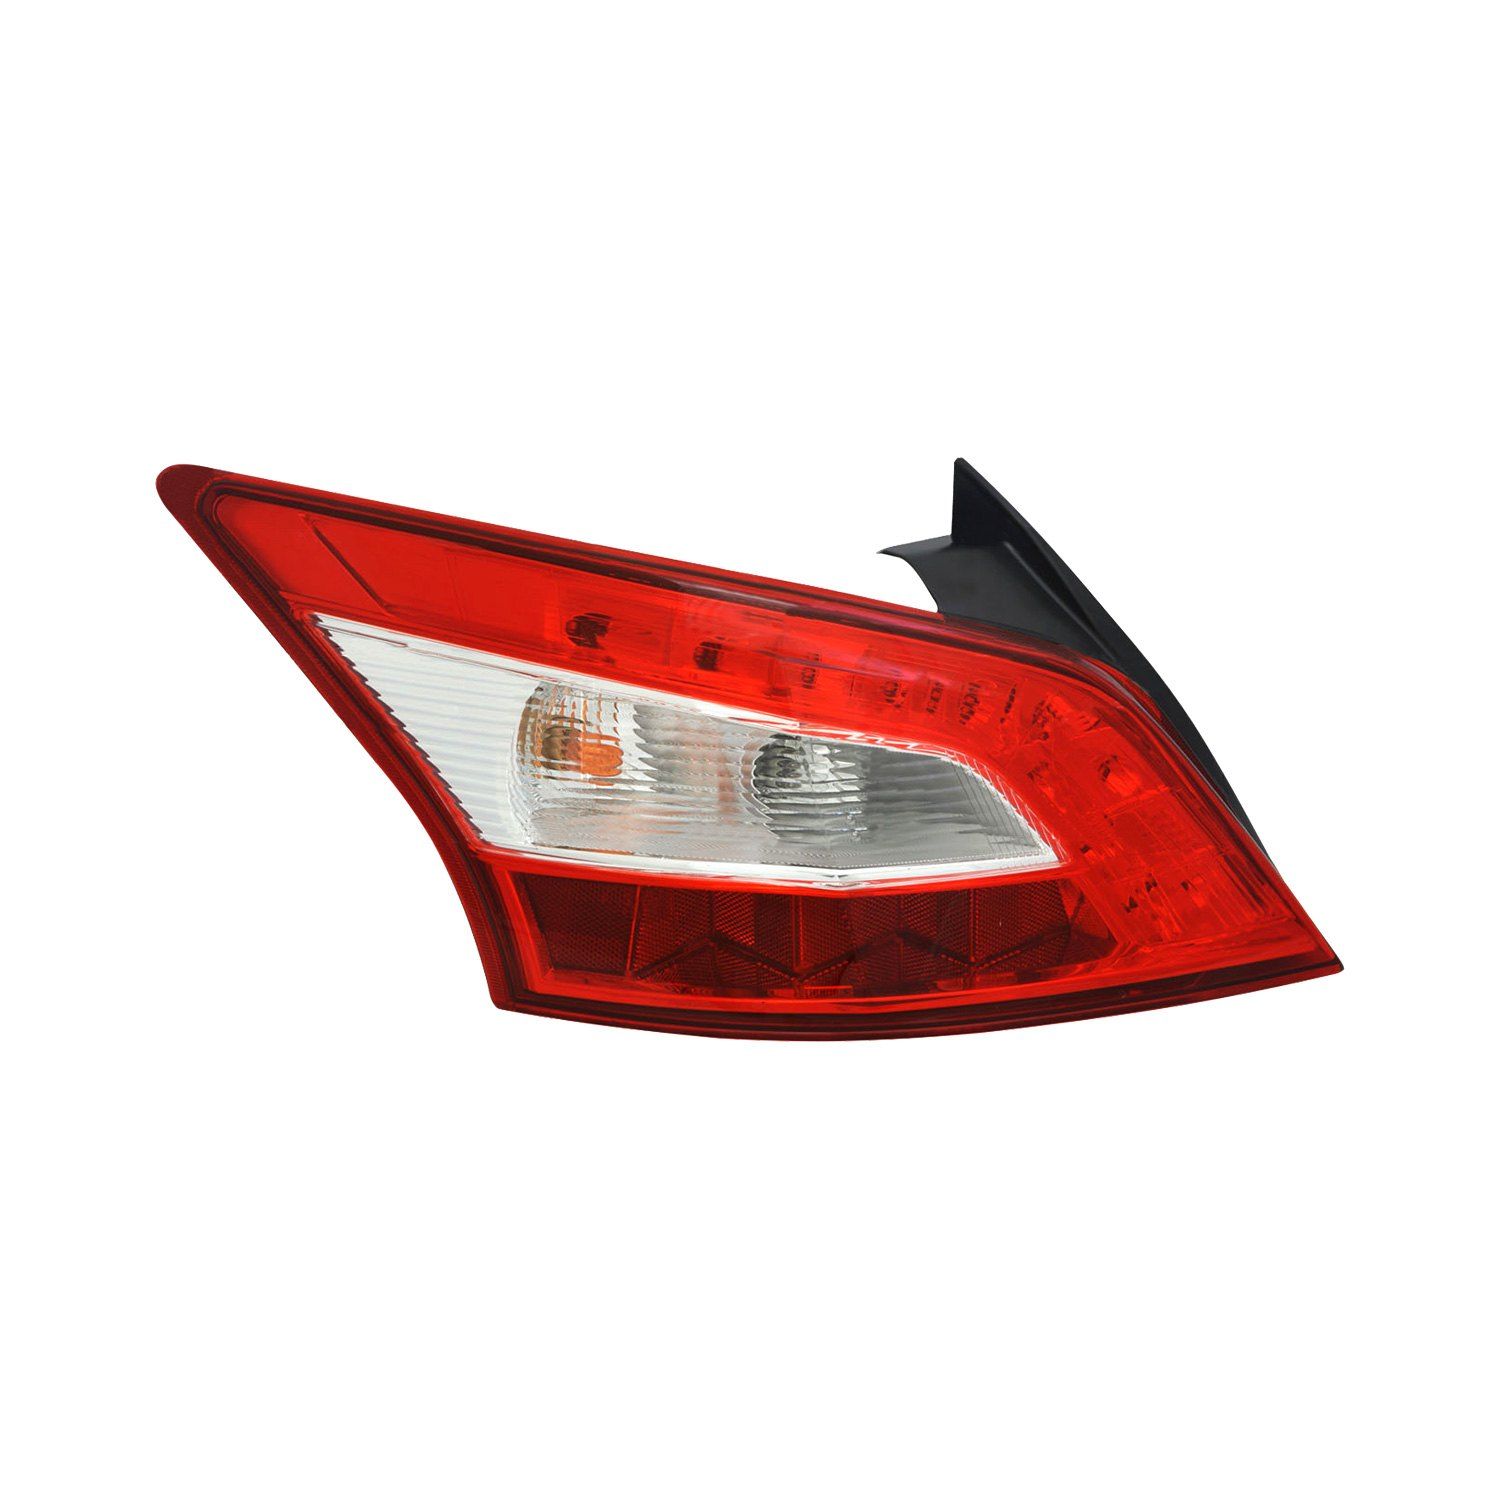 TYC 11 6581 00 1 Passenger Side NSF Certified Replacement Tail Light